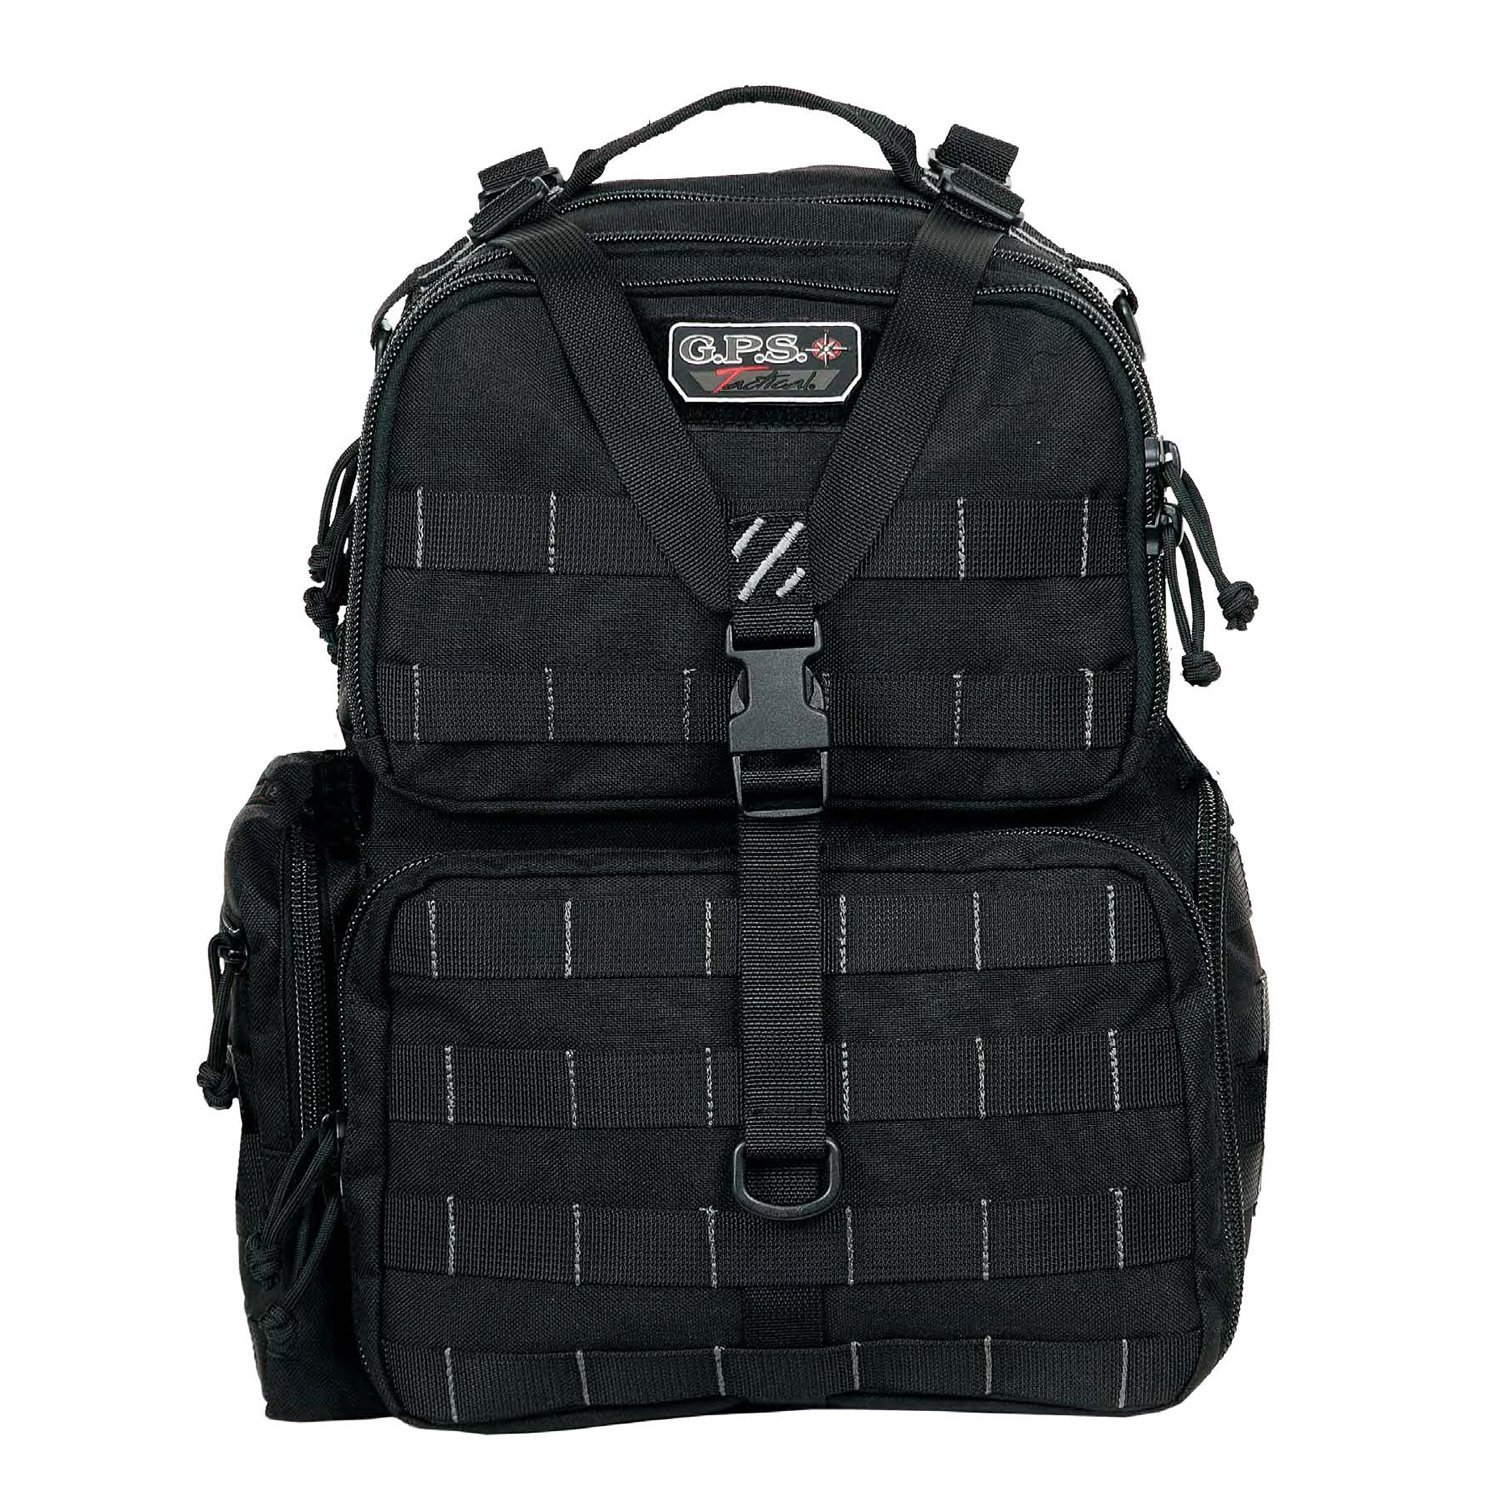 G P S Tactical Range Backpack Review